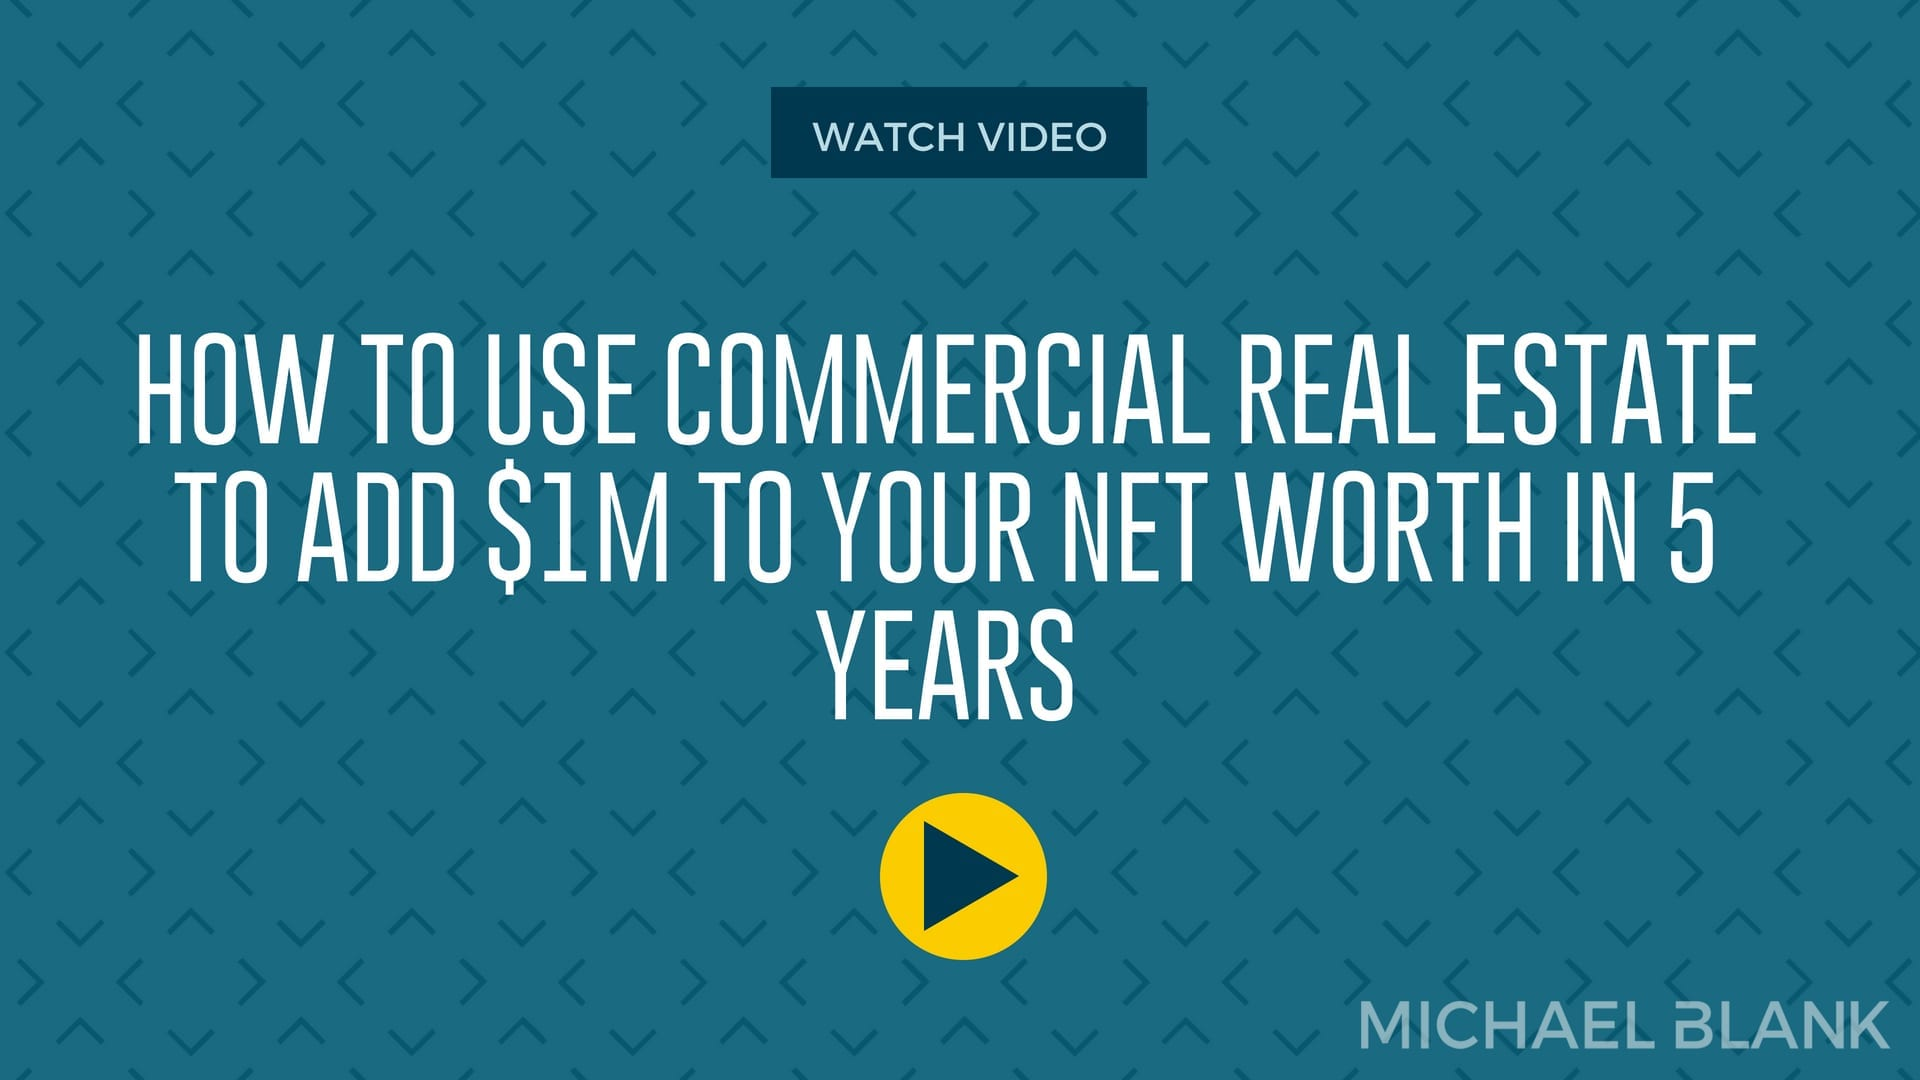 How to Use Commercial Real Estate to Add $1M to Your Net Worth in 5 Years